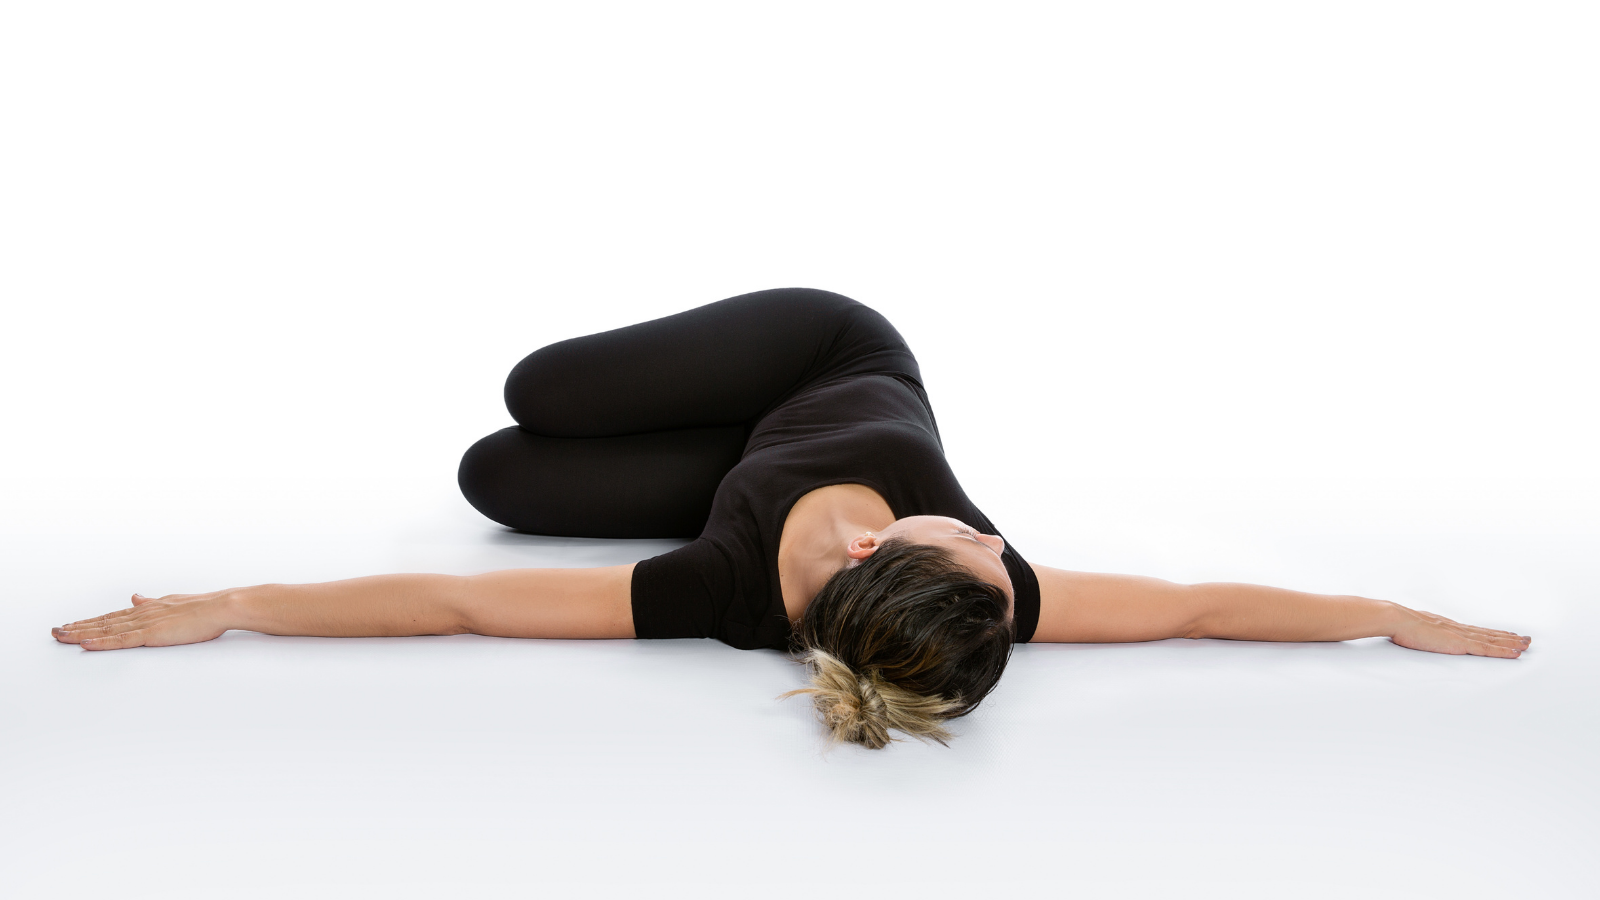 How to practice Abductor Stretch: Supine Spinal Twist yoga Pose (Supta Matsyendrasana) for pelvic alignment